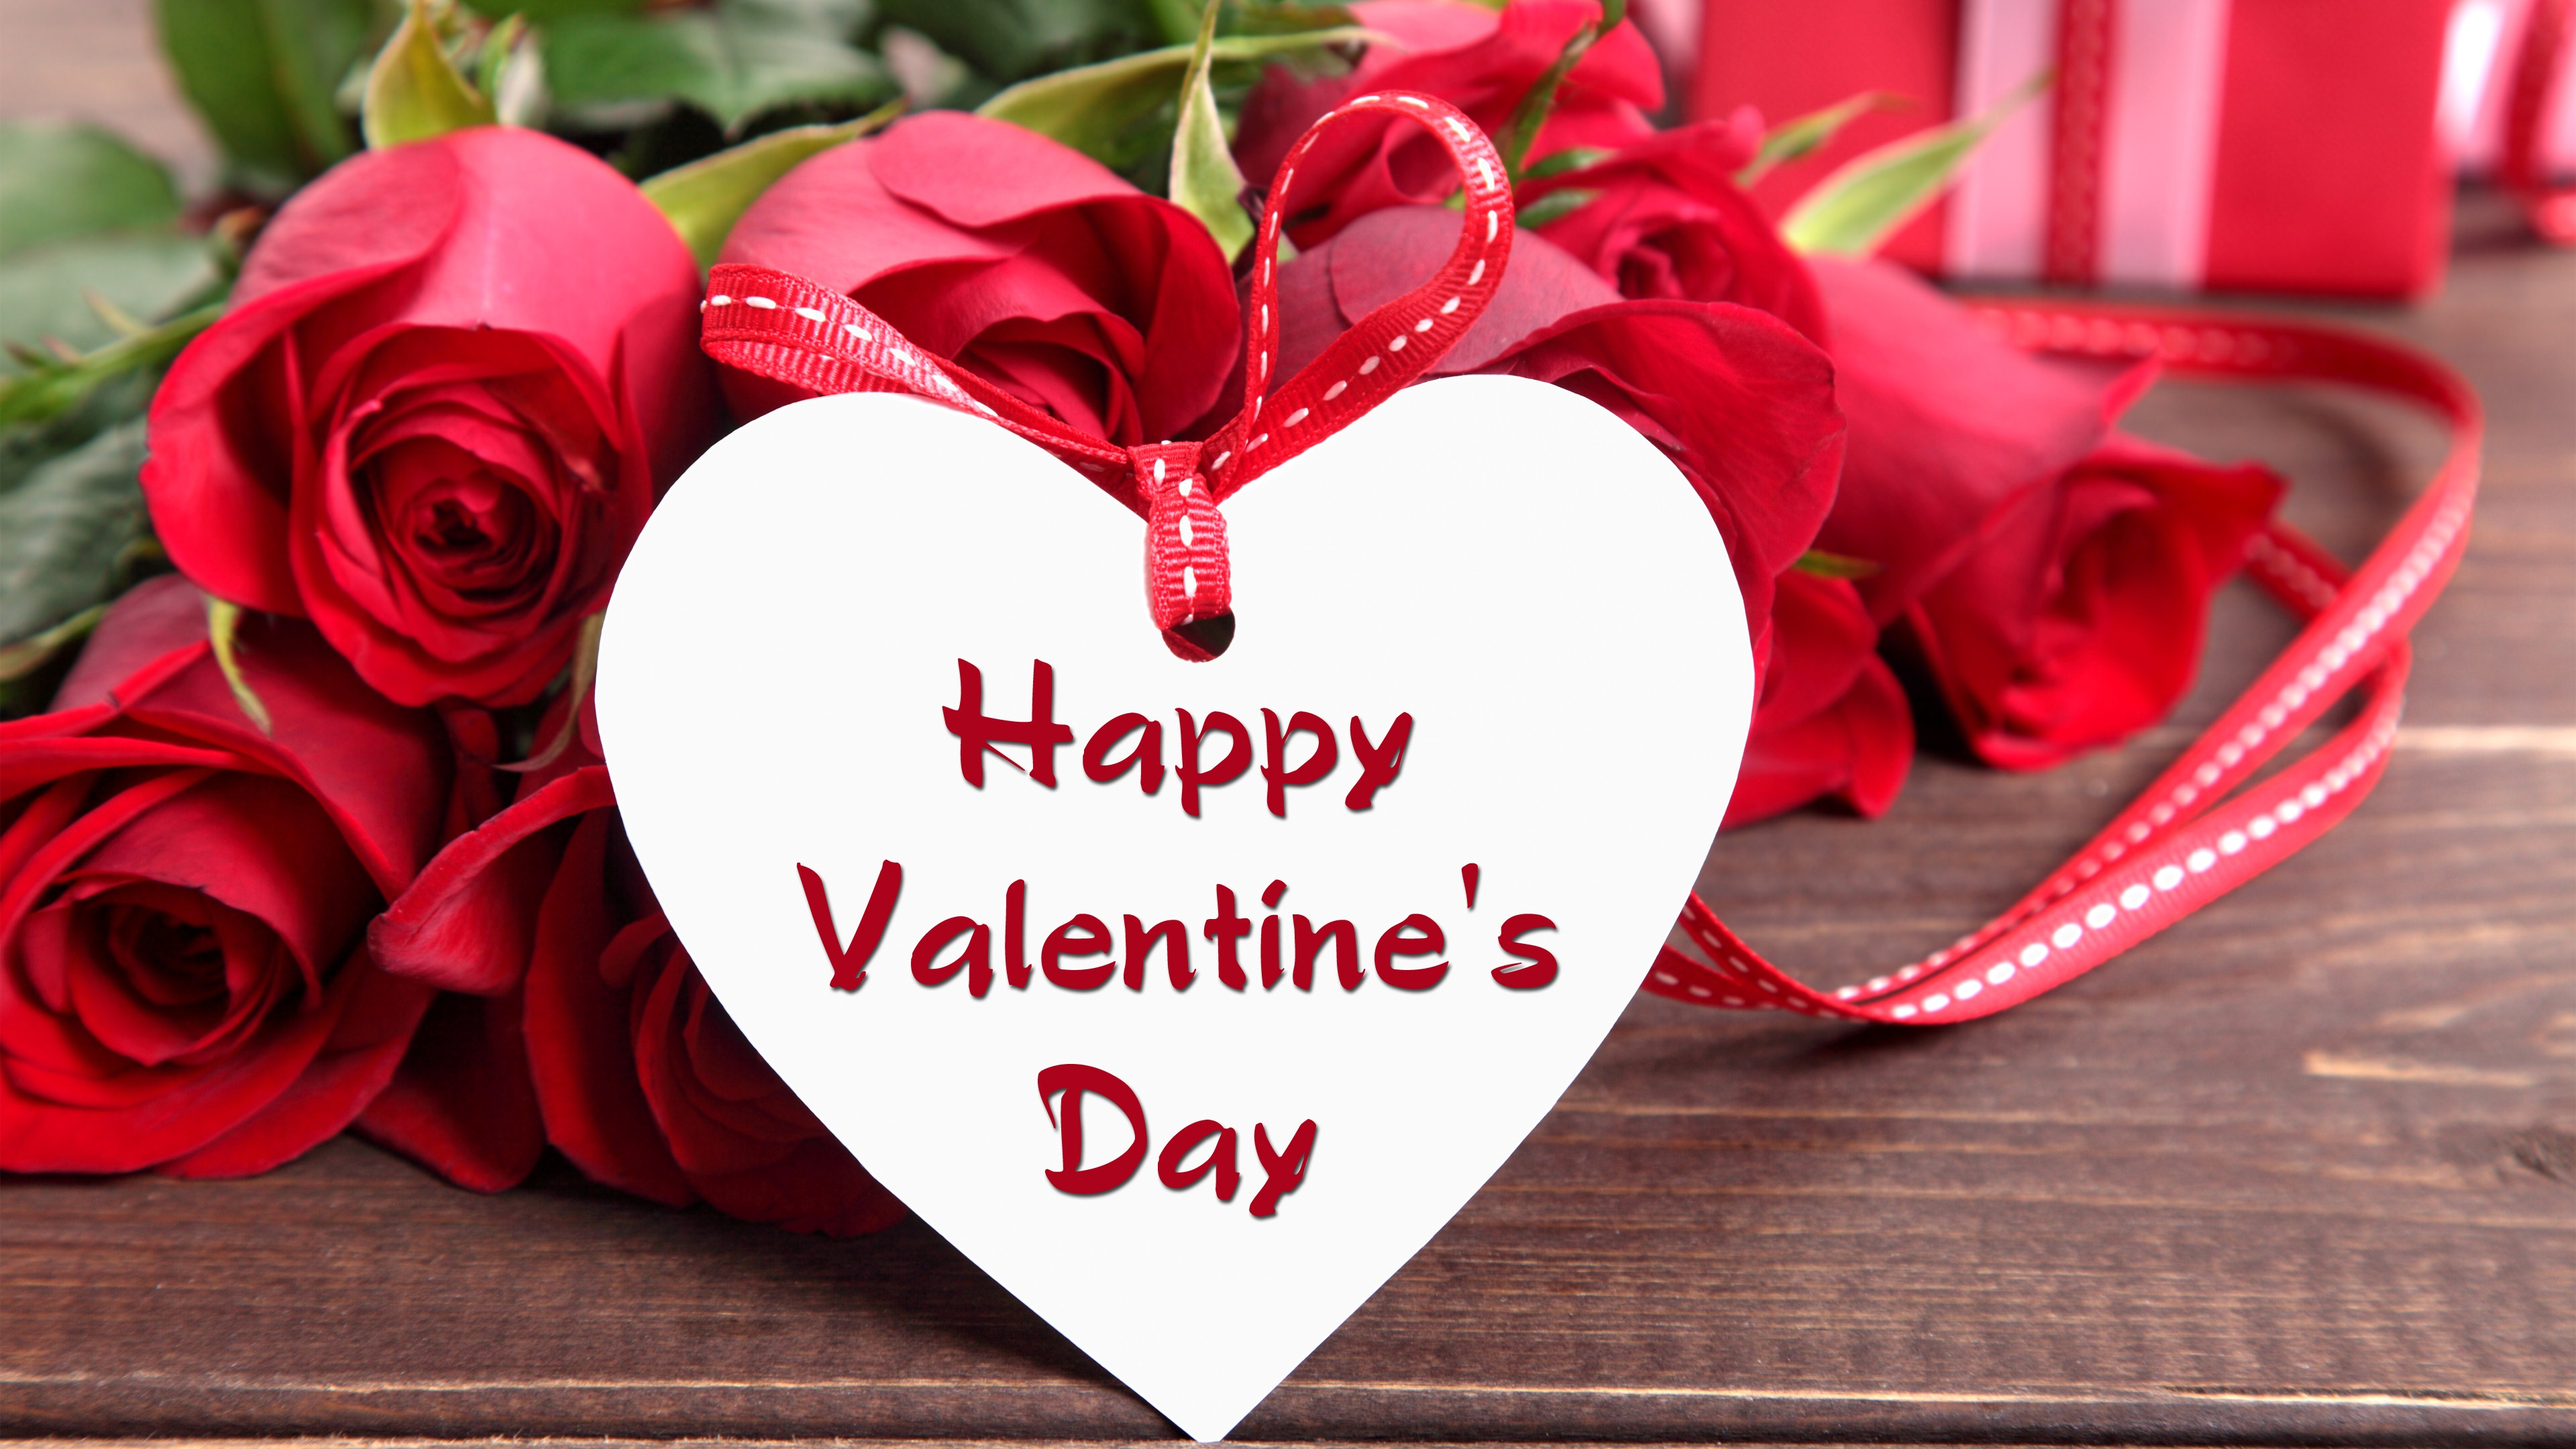 Happy Valentines Day Images Pics Photos Wallpapers 2020 HD 3840x2160